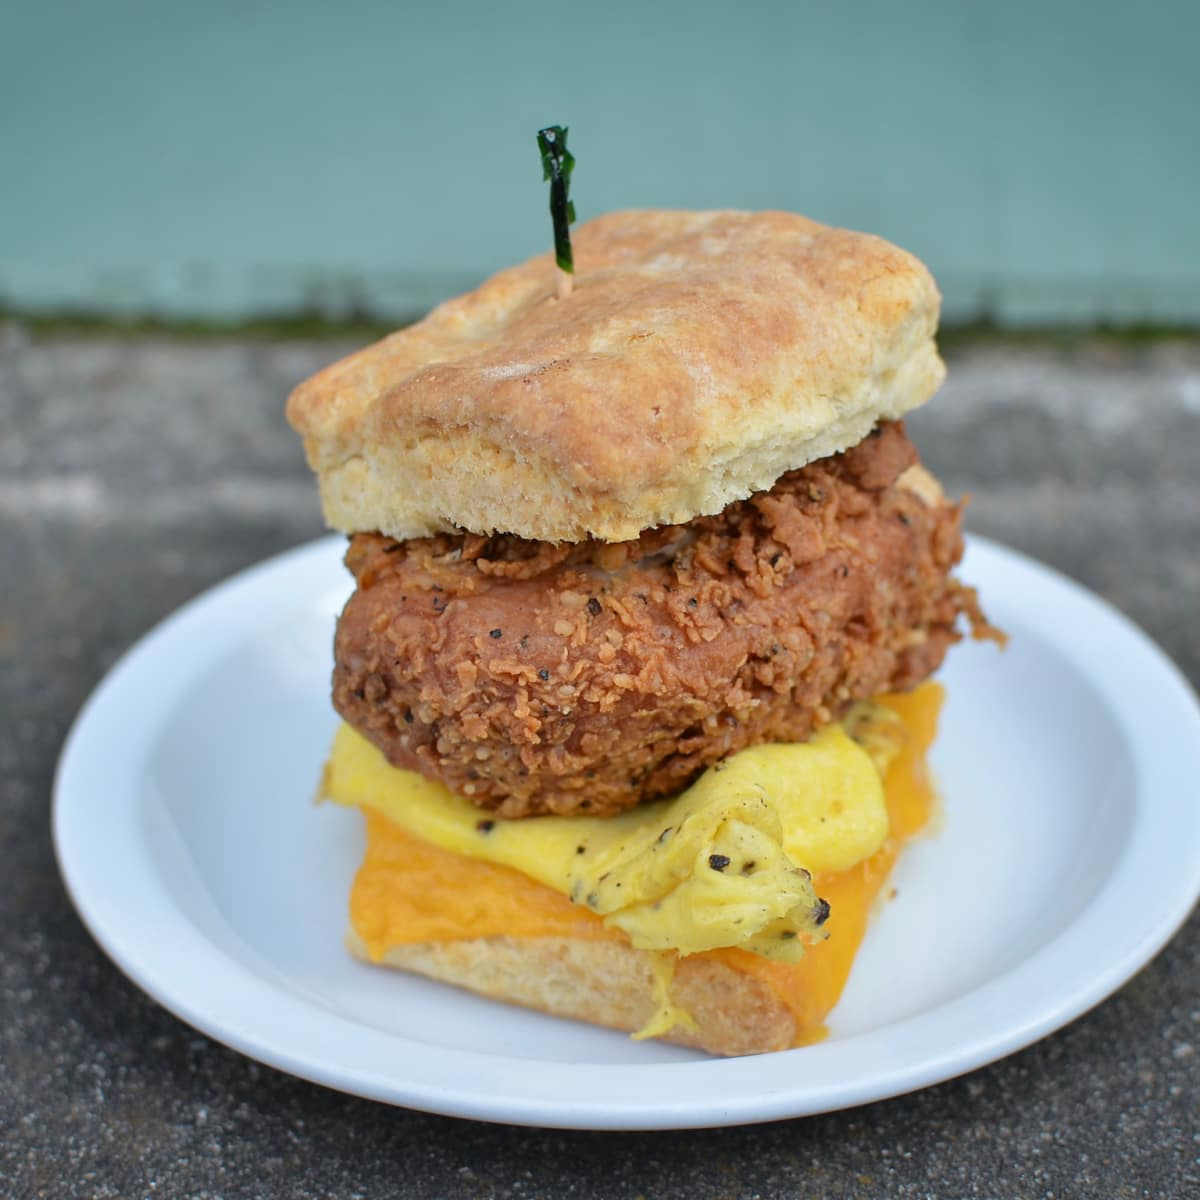 Revival Market Time Out chicken biscuit